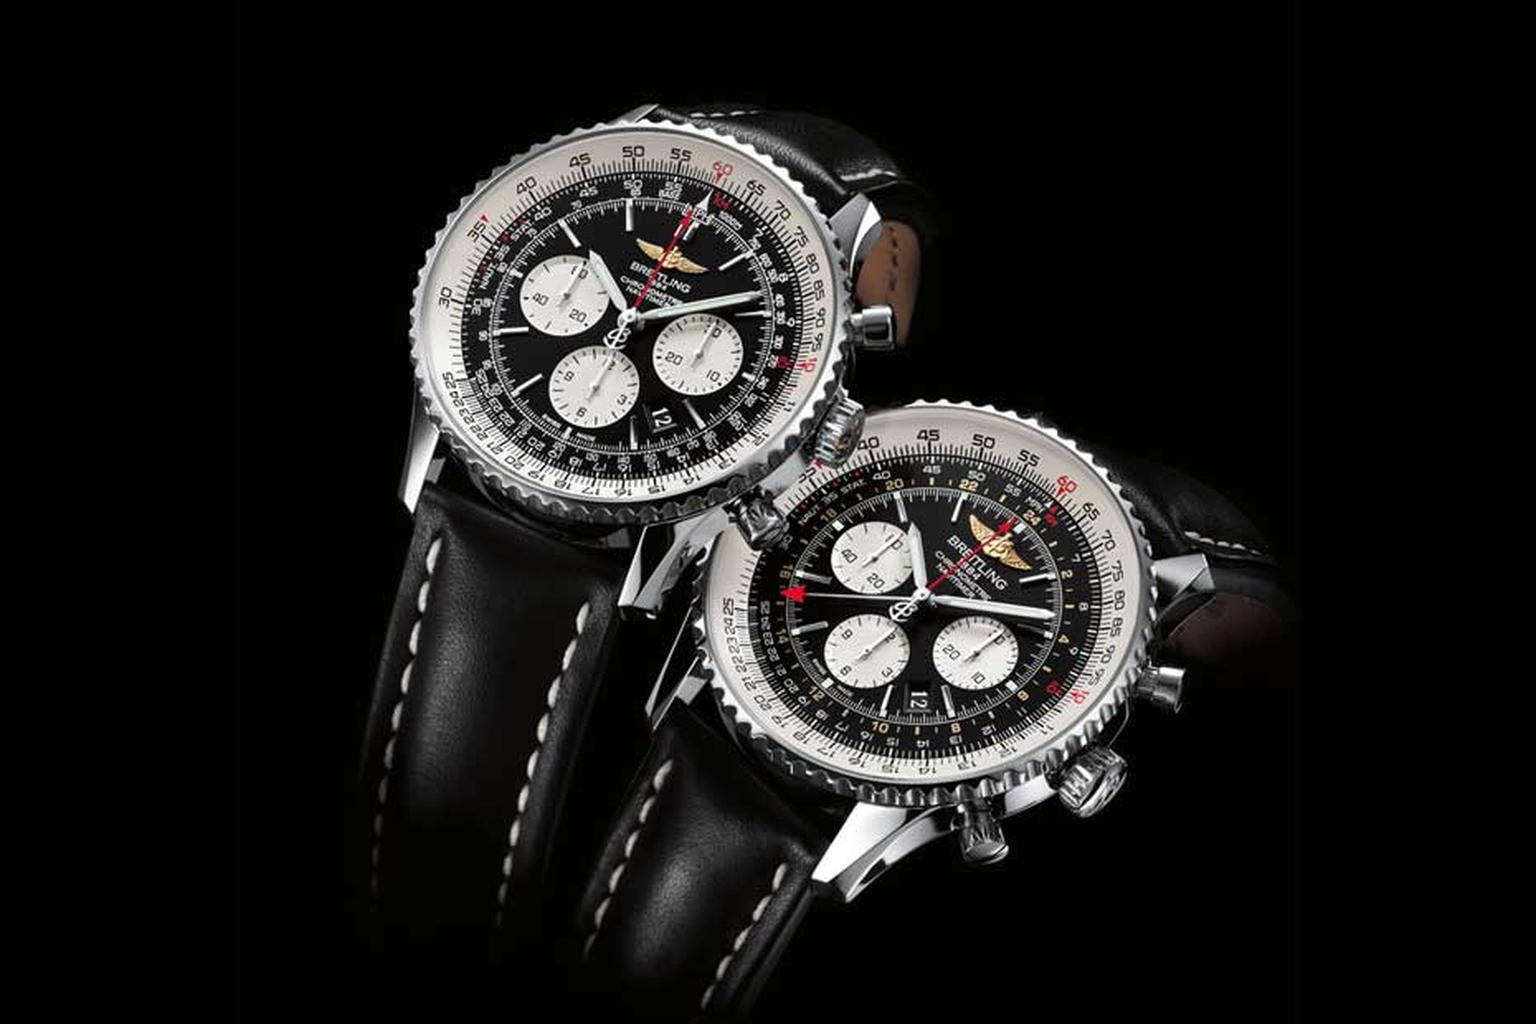 The Breitling Navitimer watch of 1952, combining chronograph functions with a navigation computer capable of handling all calculations of a flight plan, was quickly adopted by professional pilots and would become a hallmark model of the house thanks to it